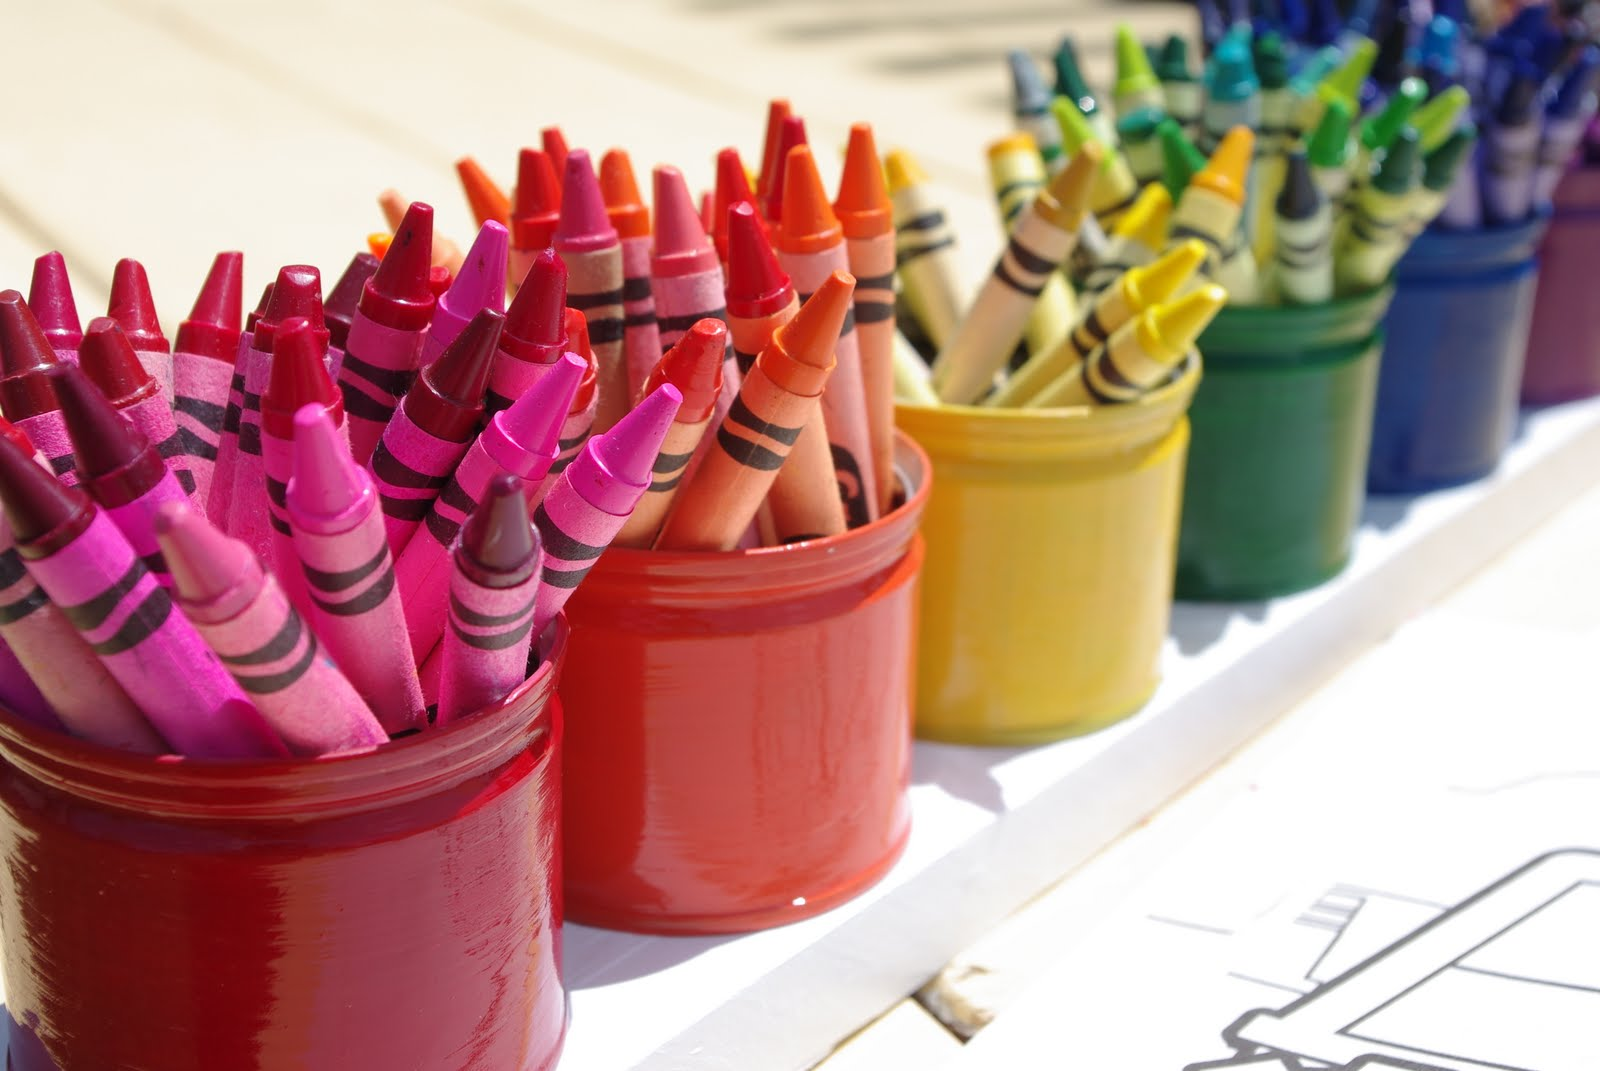 Homemade Pencil Holders Upcycled Montessori Style Crayon Holder Tutorial Happiness Is